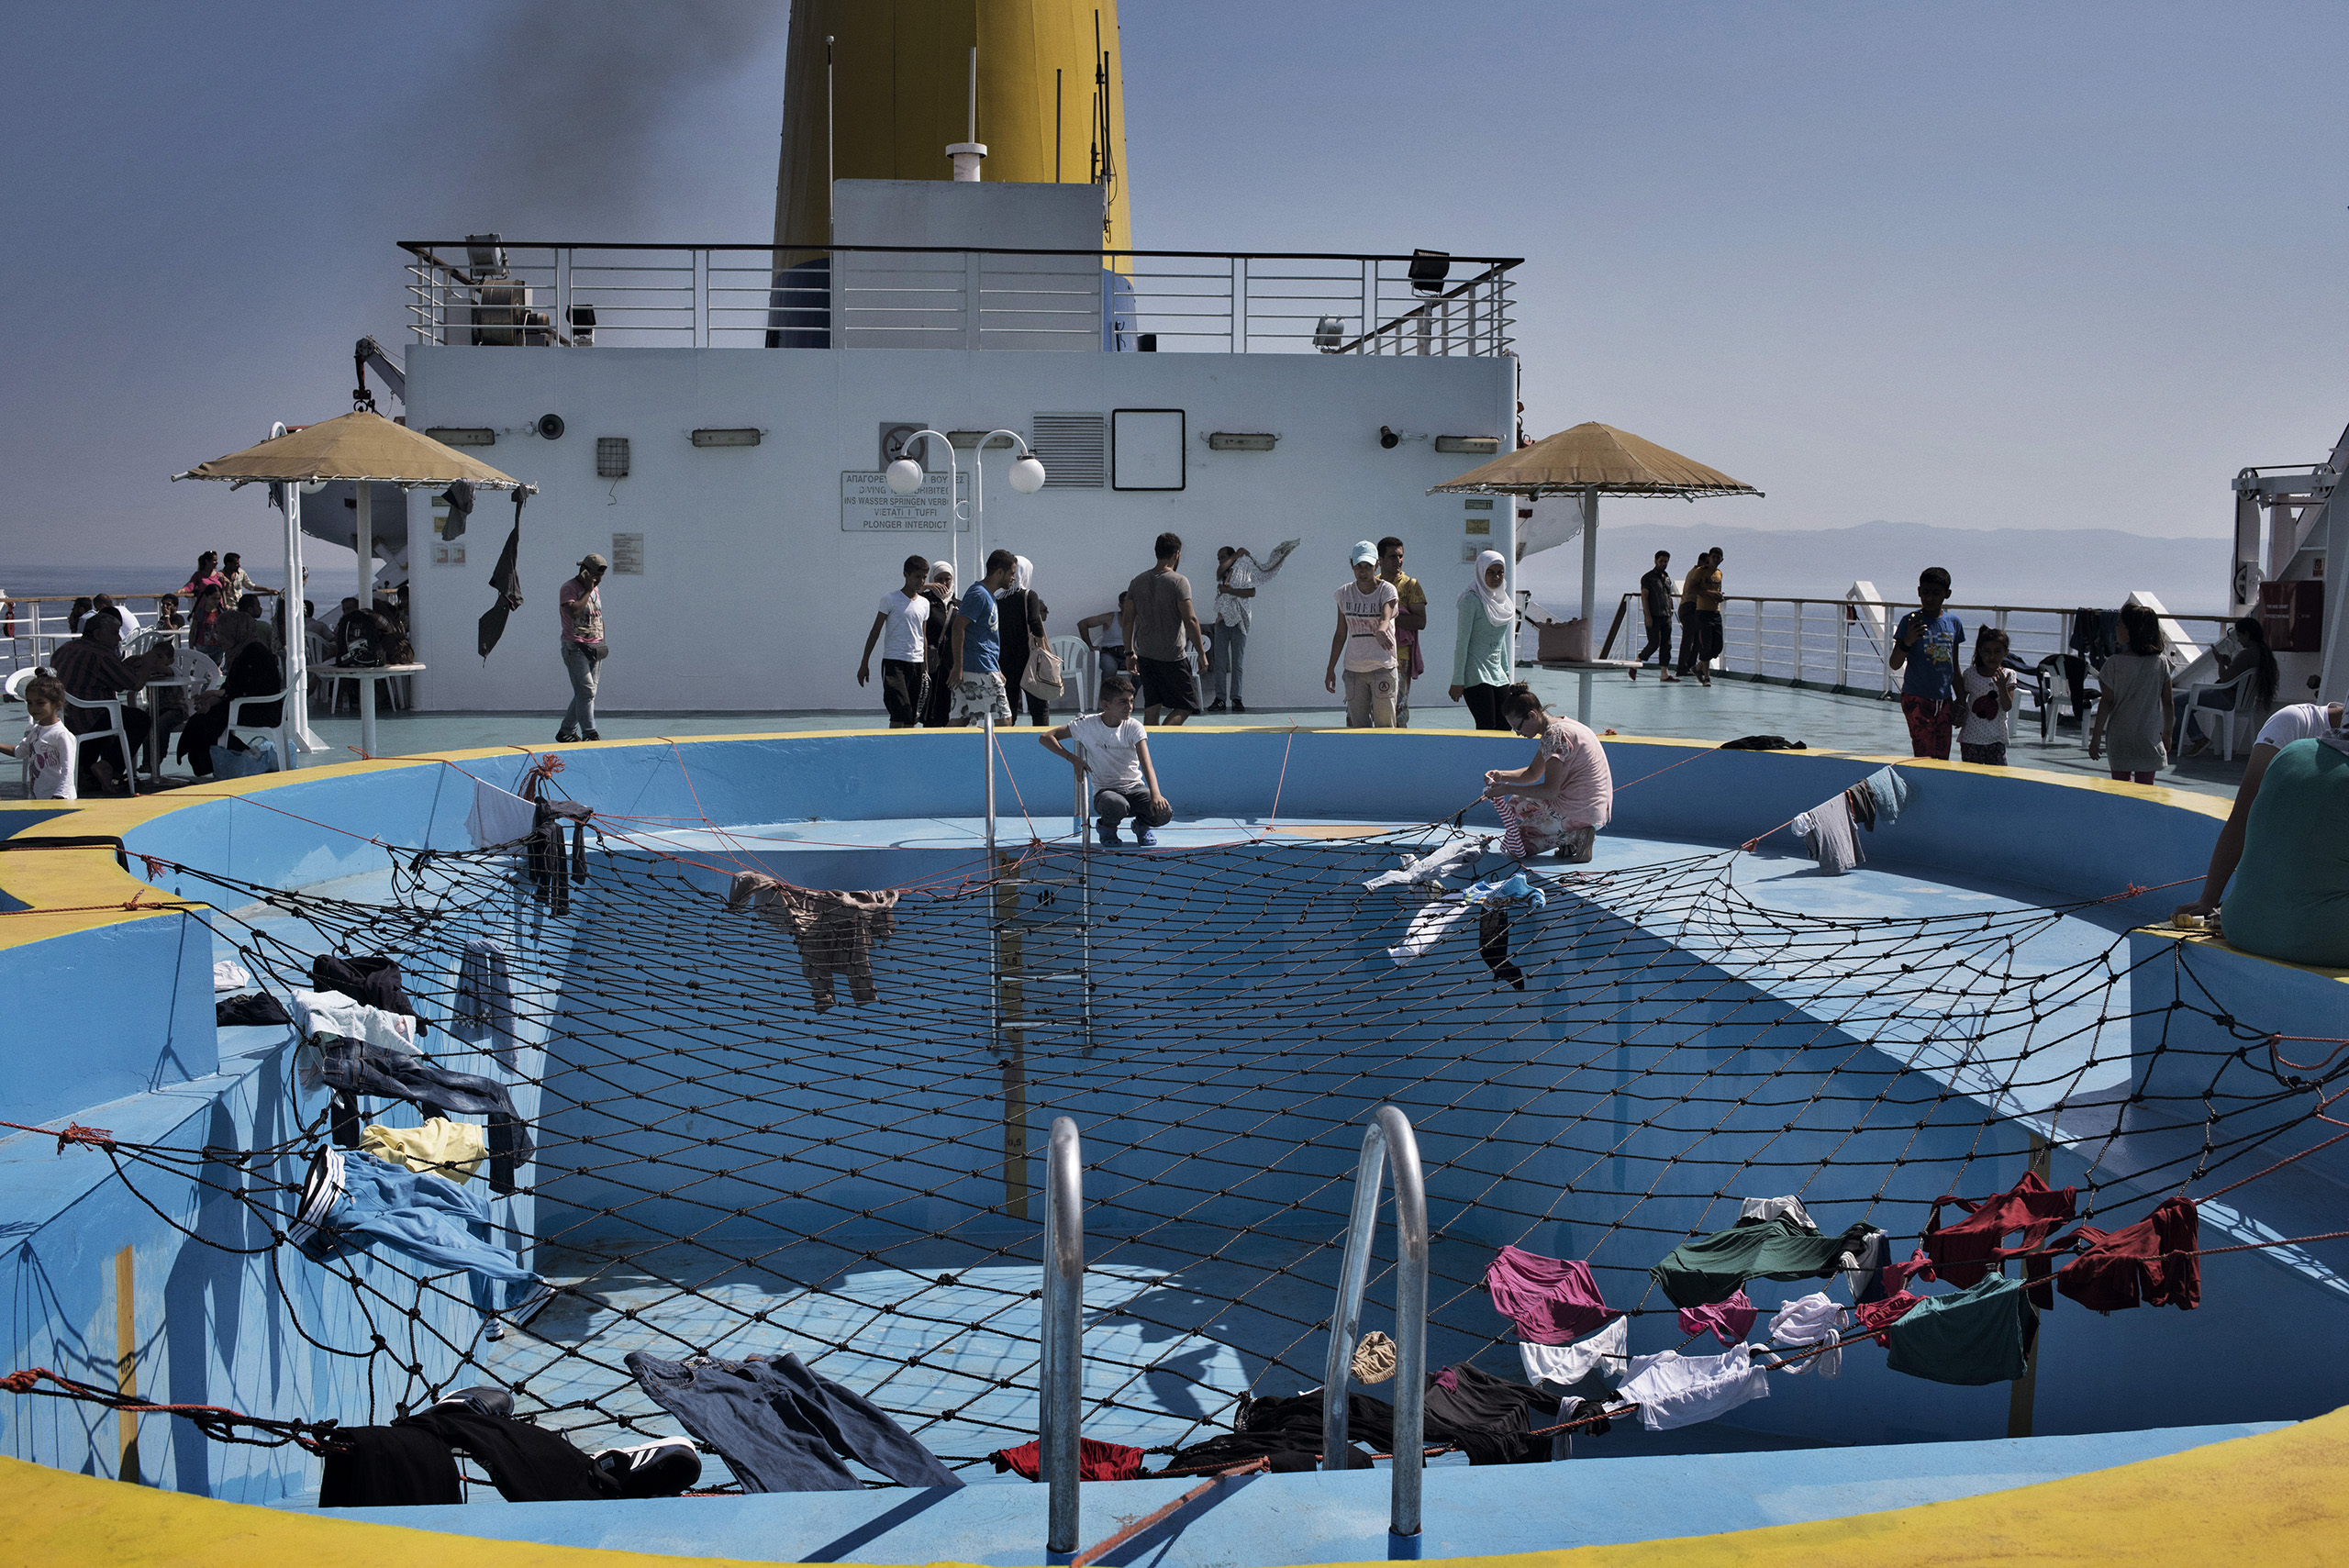 Migrants use the netting over a swimming pool to dry their laundry aboard a cruise ship that the Greek government chartered to transport them to Athens from the Greek island of Lesbos.